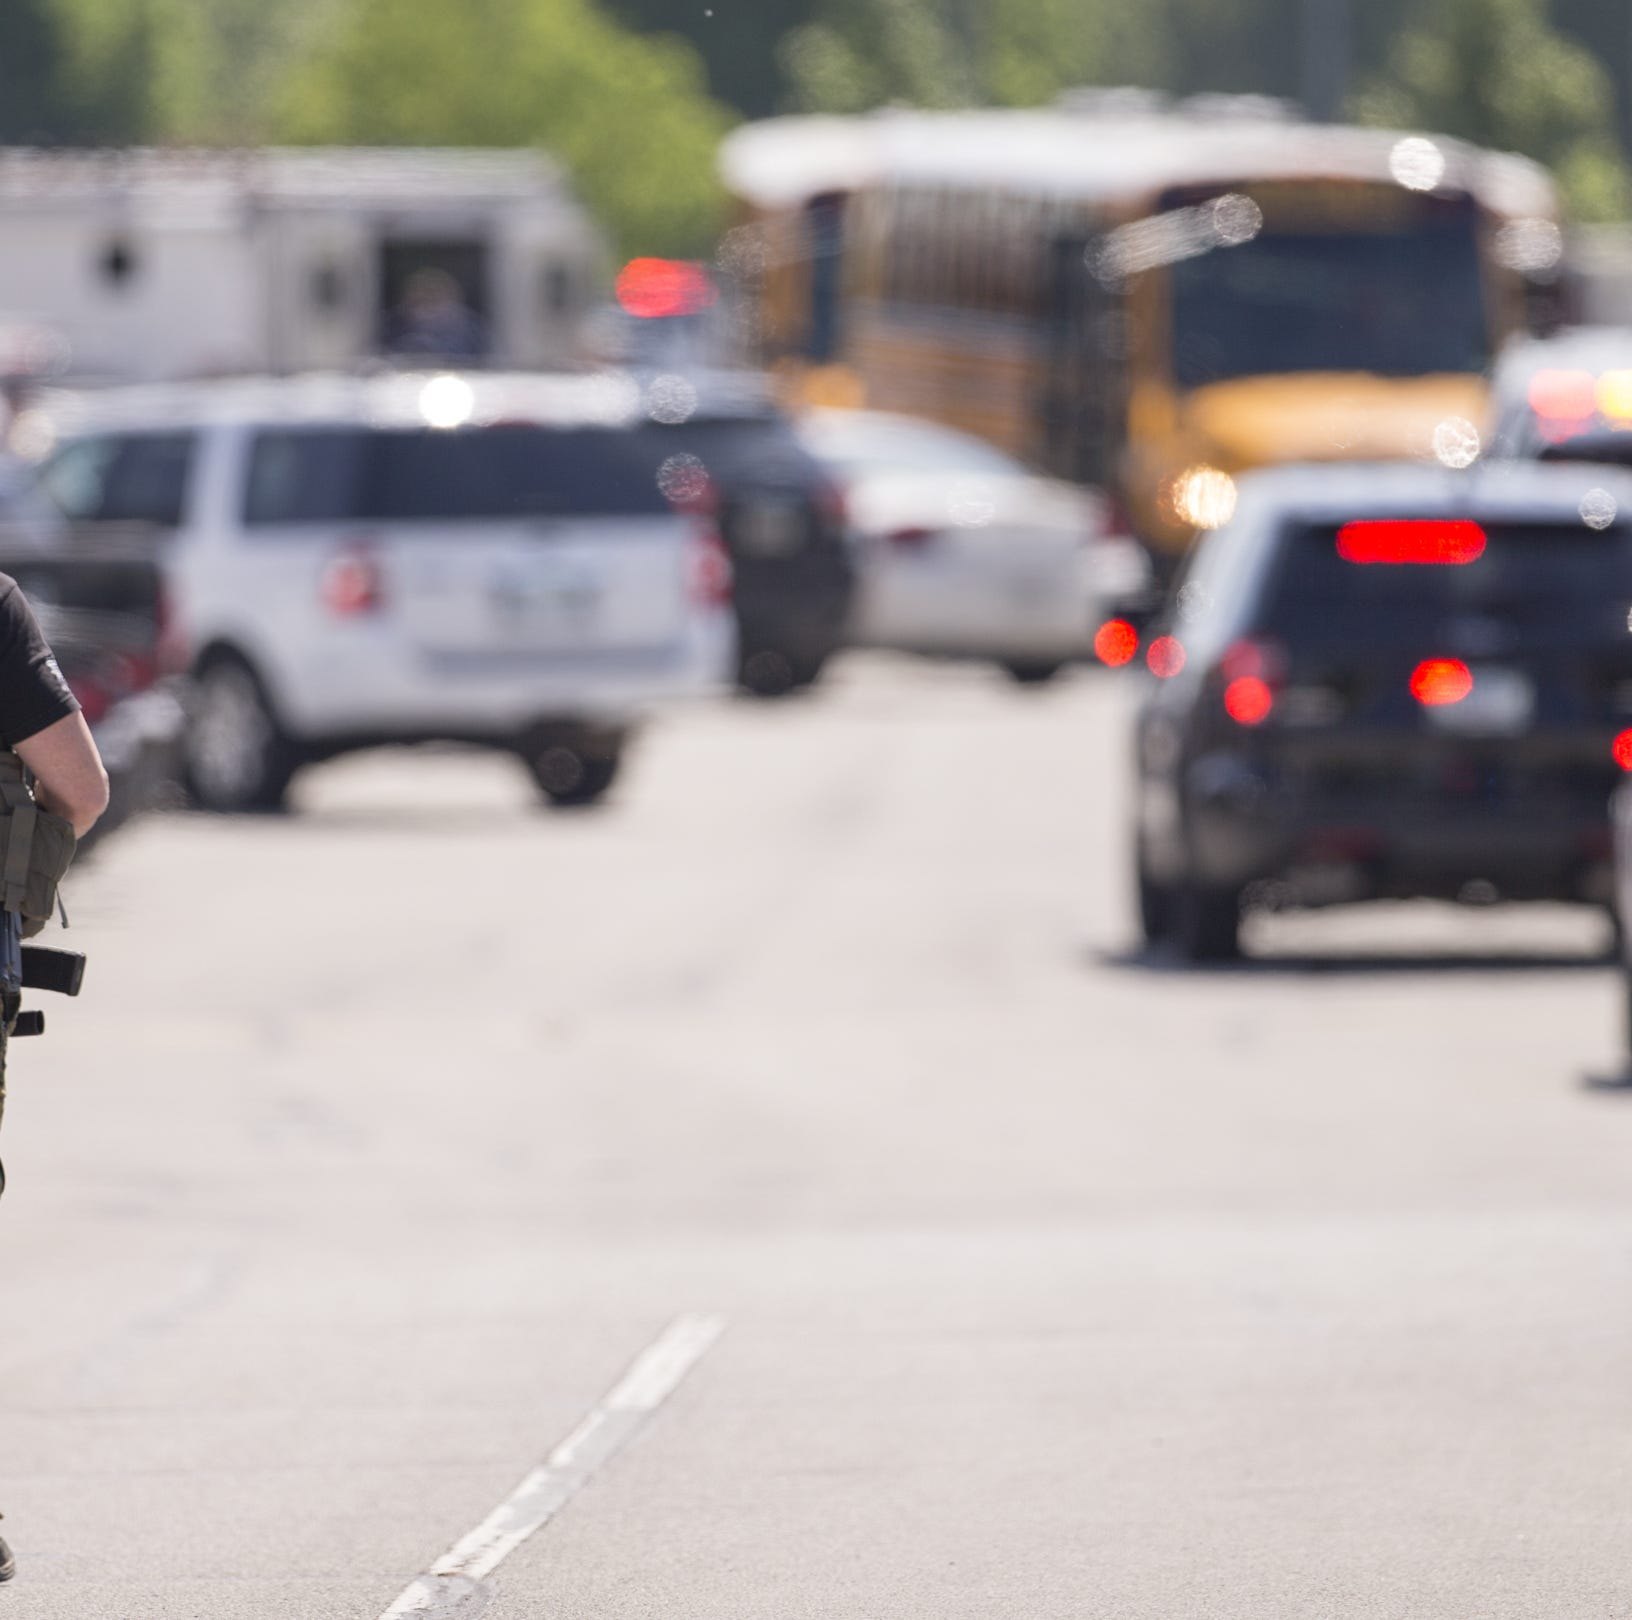 A large law enforcement presence was seen outside a shooting at or near Noblesville West Middle School, Noblesville, Friday, May 25, 2018. One person was taken into custody.